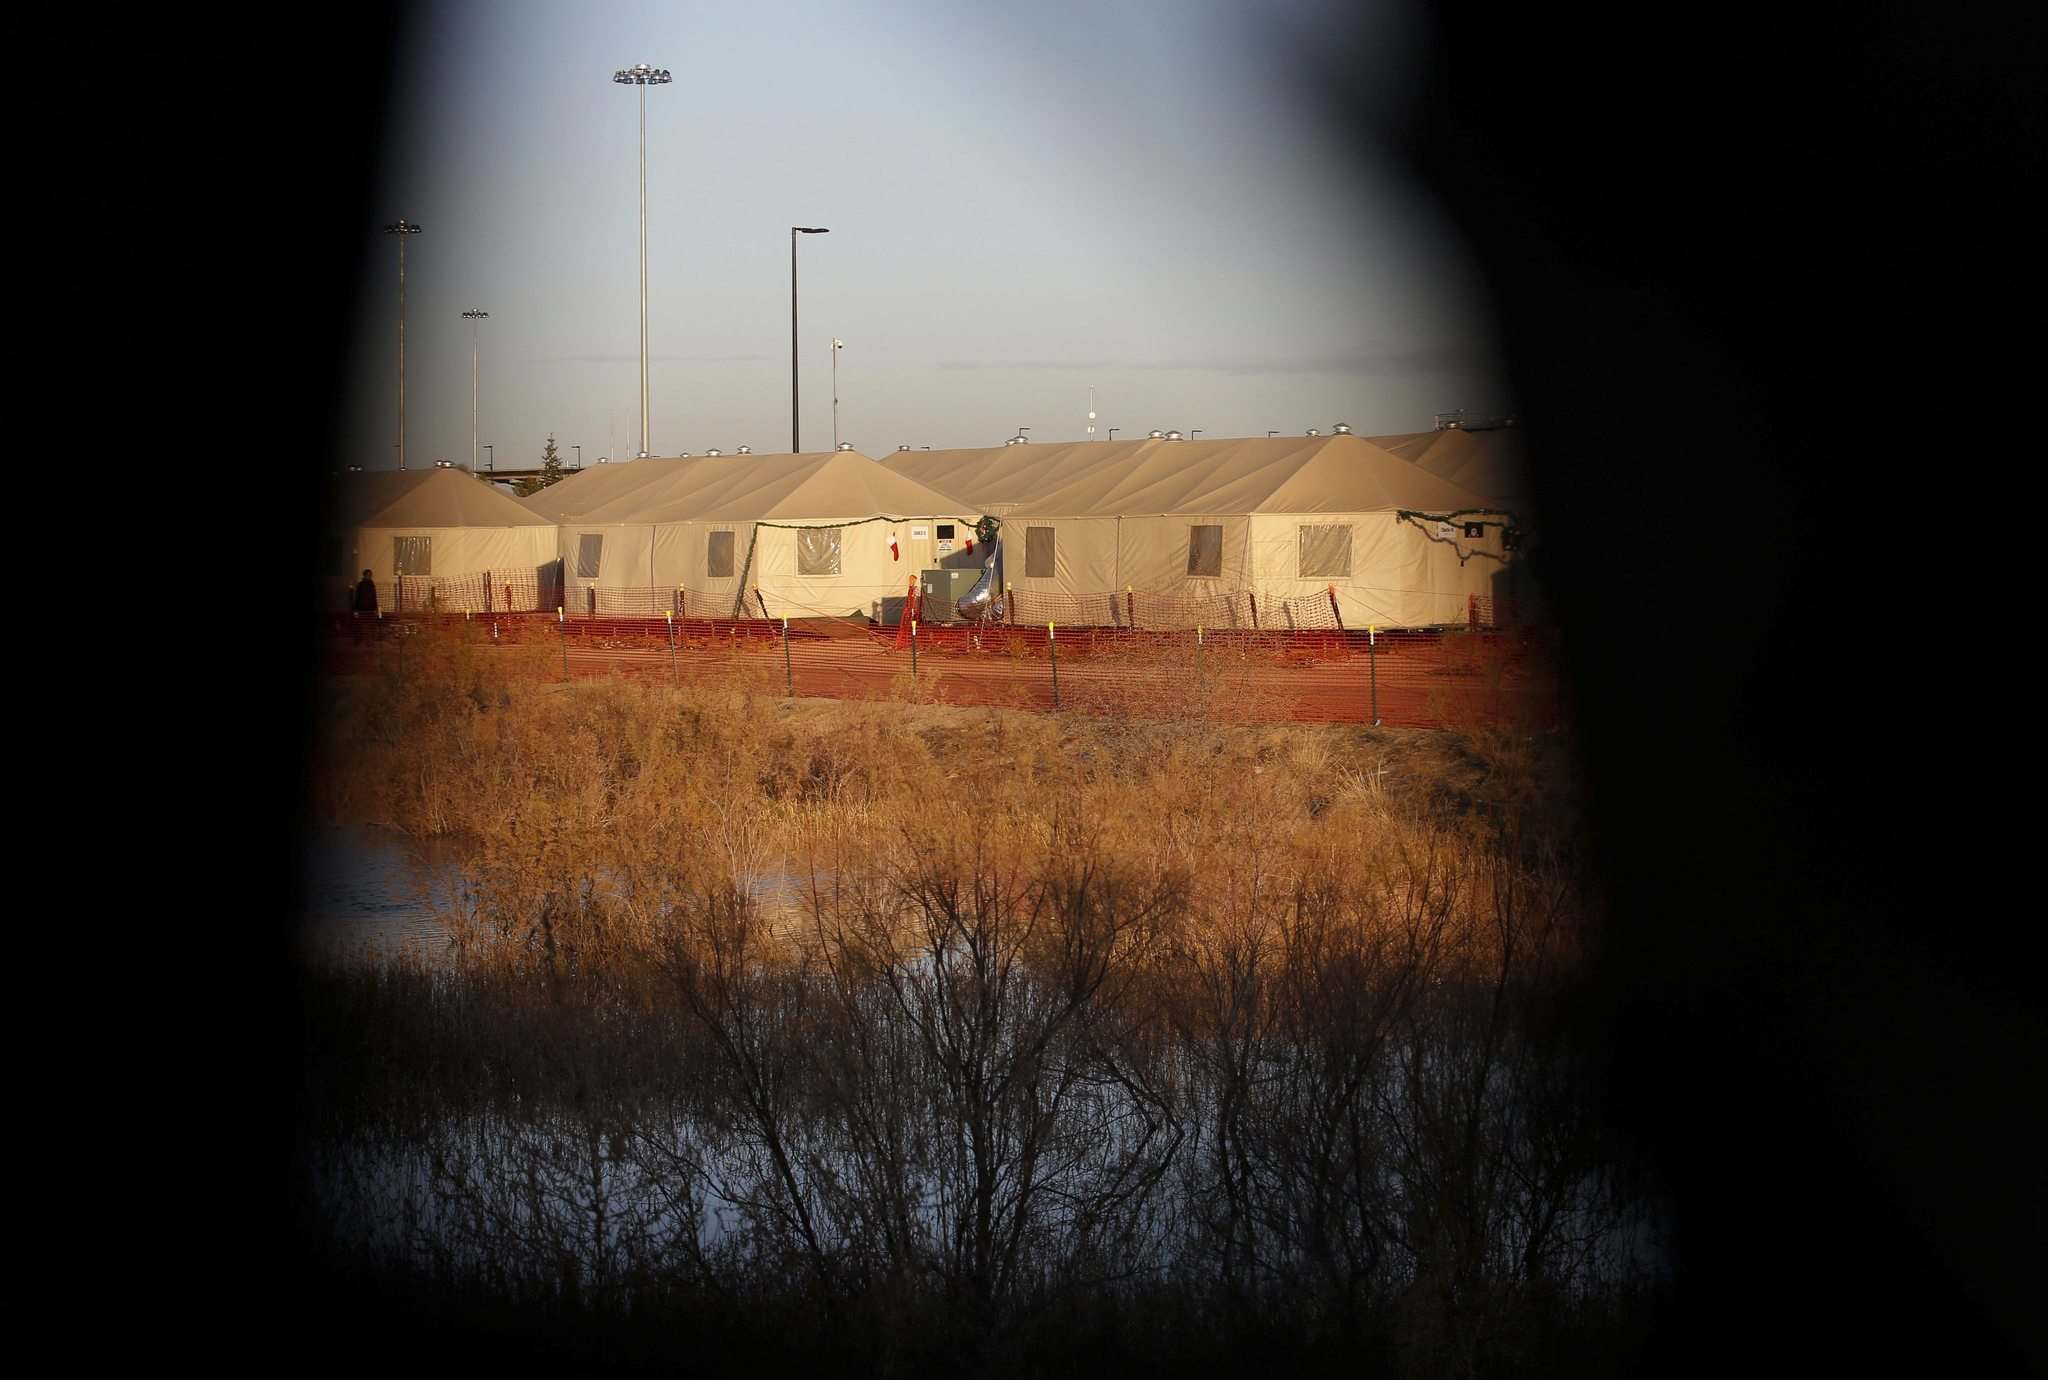 In the U.S., children of asylum seekers were forced into detention camps. (Andres Leighton / The Associated Press files)